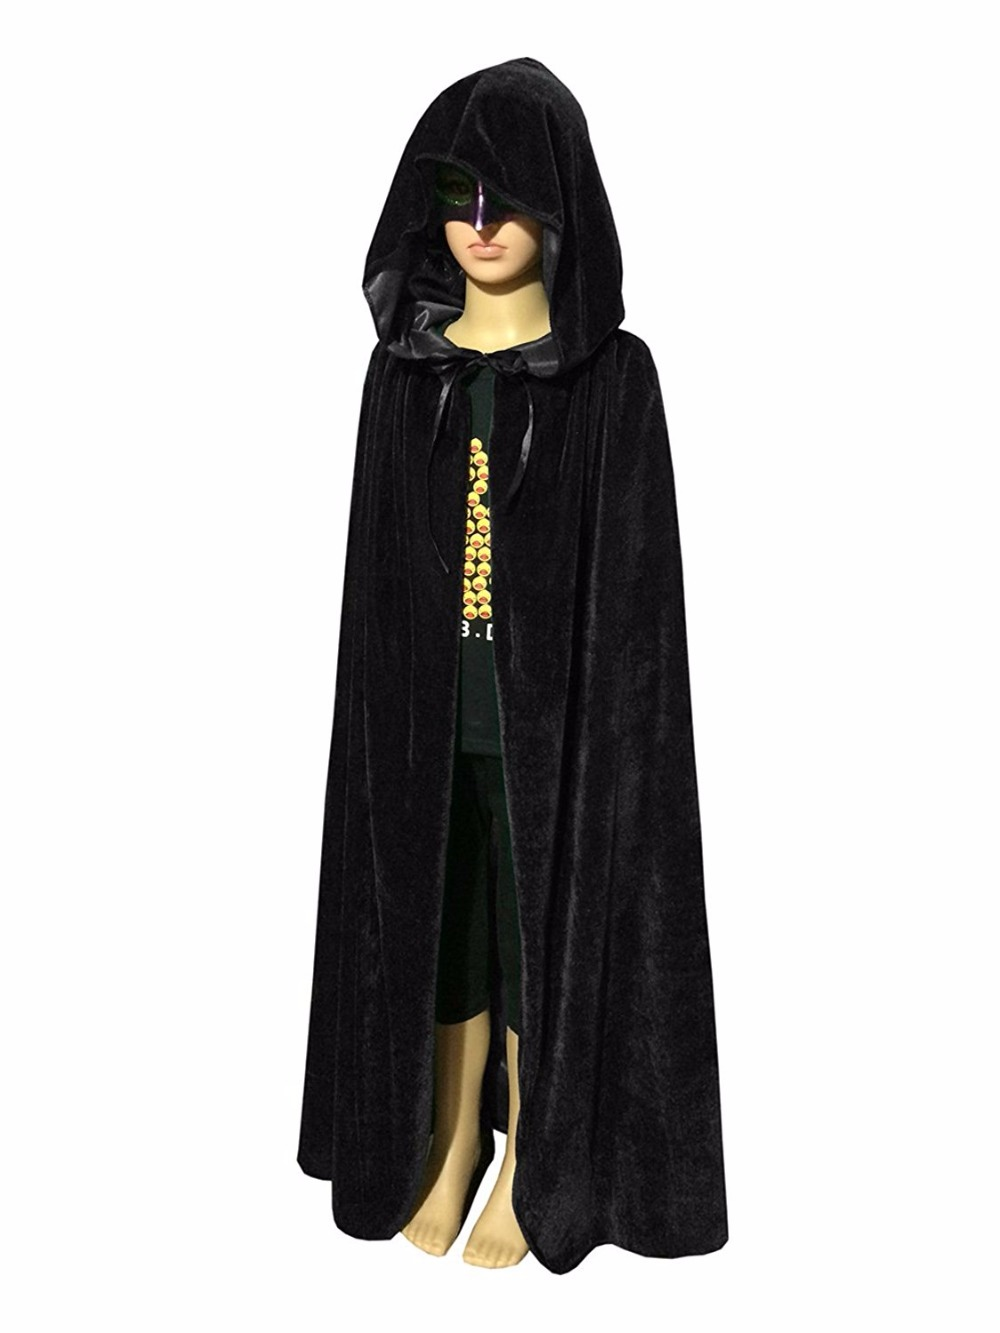 Halloween Hooded Cloak Wicca Robe Medieval Witchcraft Cape Costume Accessory Y